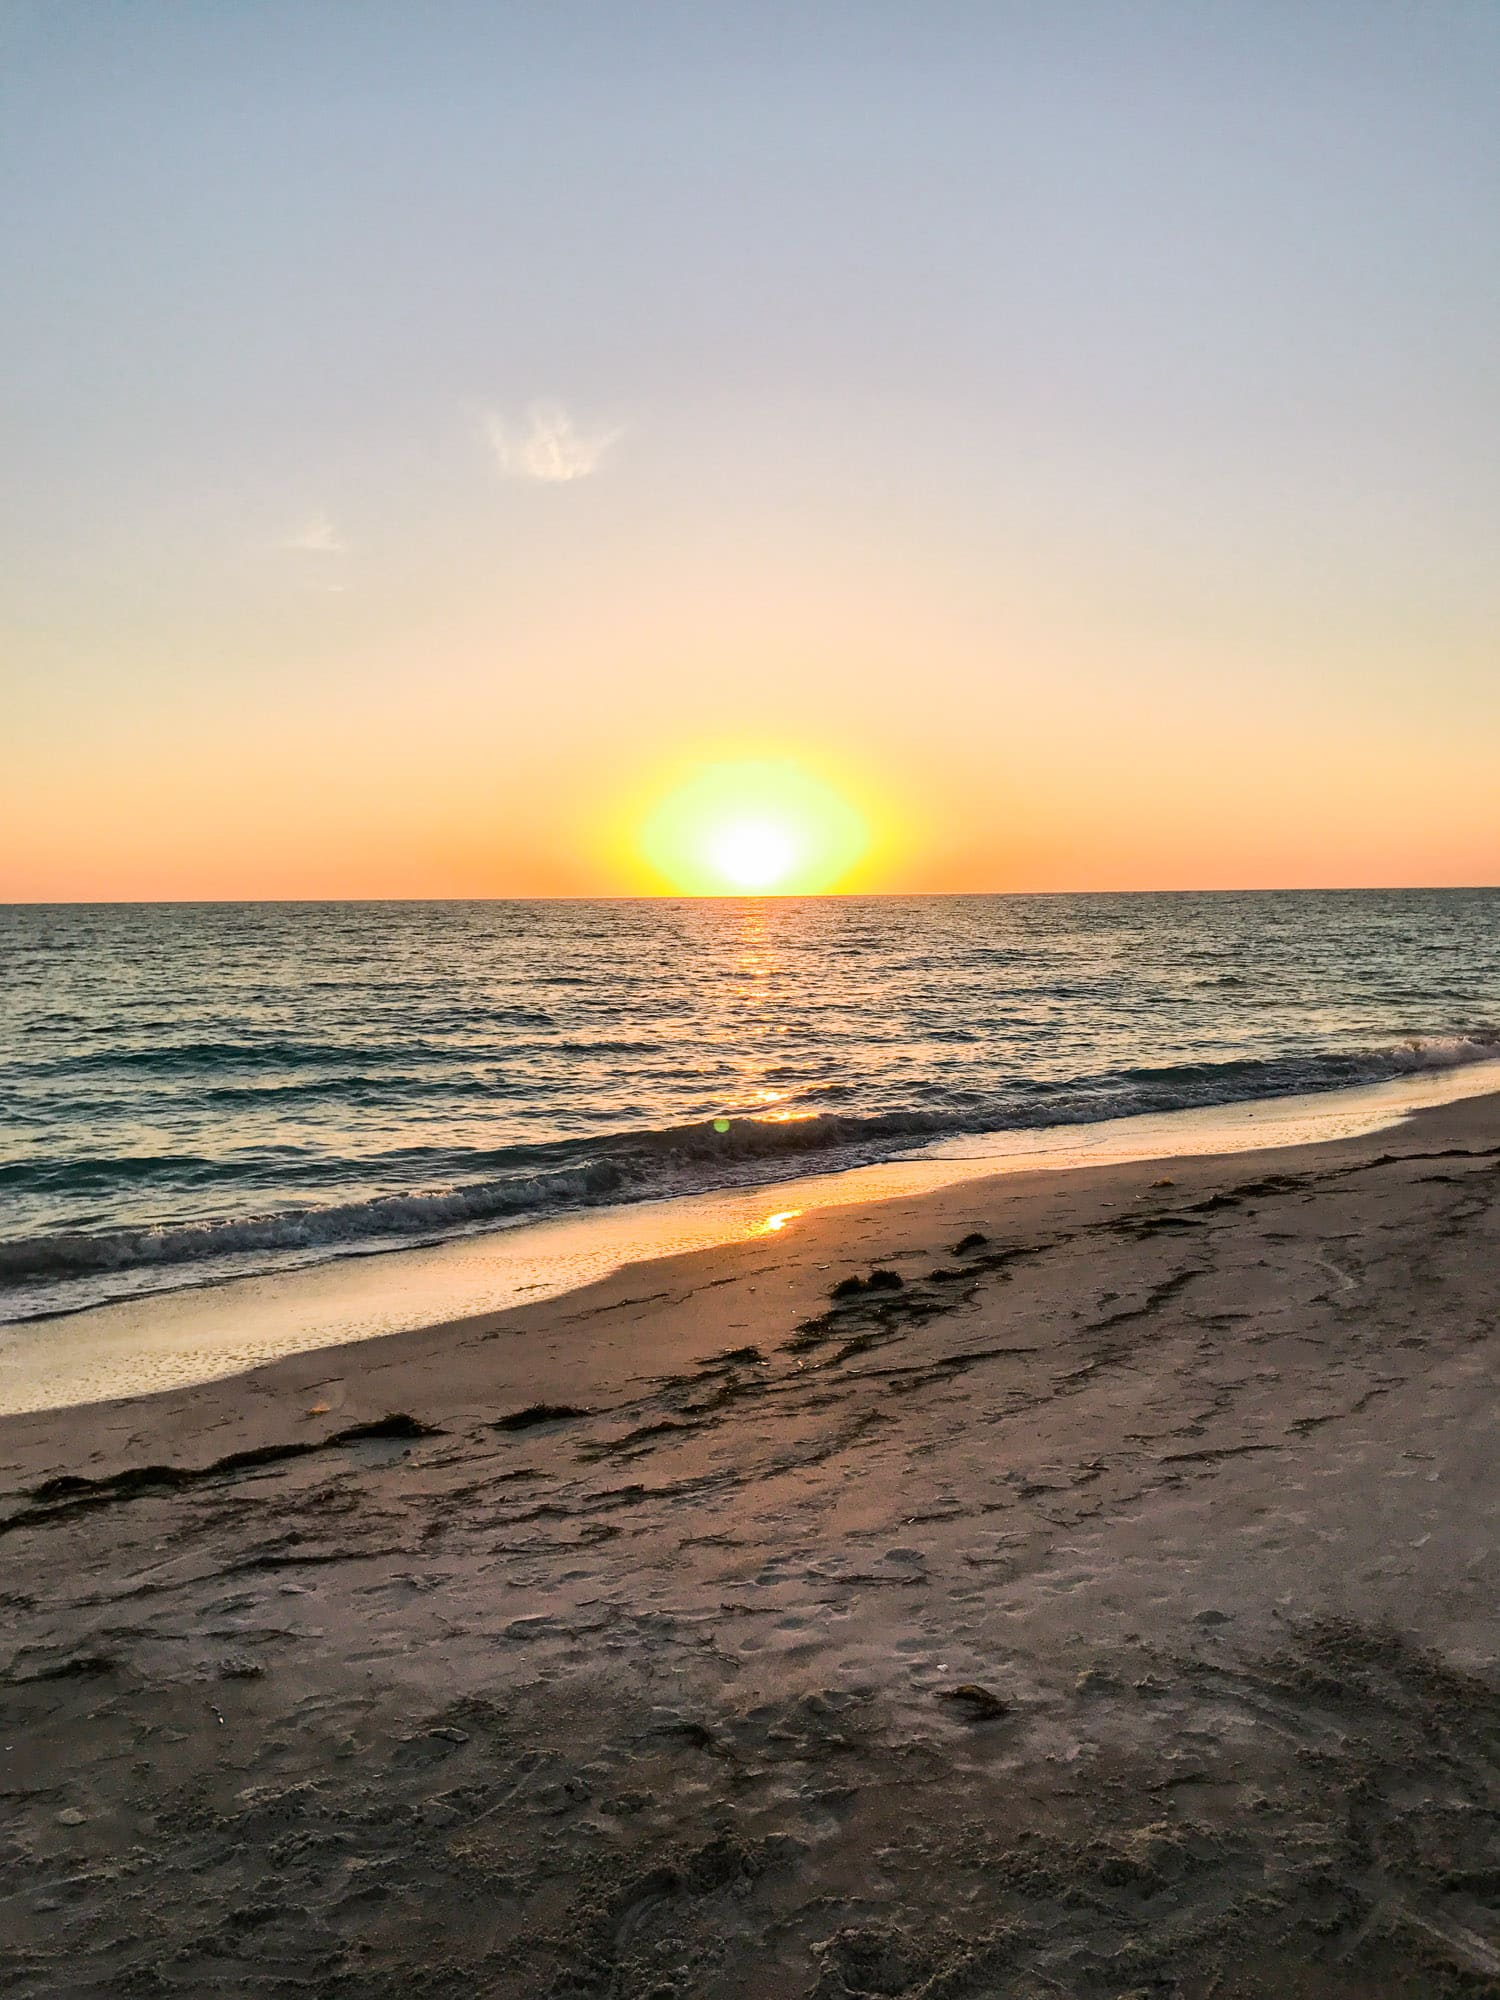 How to plan a romantic weekend getaway in Longboat Key, Florida, including a relaxing stay at The Resort at Longboat Key Club! #LoveFL sponsored by @visitflorida | sunset at Lido Beach | Florida travel tips, beach vacation, vacation ideas, vacation goals, travel blogger Ashley Brooke Nicholas, Florida travel guide, Longboat Key travel guide, Sarasota travel guide, beautiful beaches, boating, affordable travel, US travel, summer vacation, spring break ideas, romantic vacation